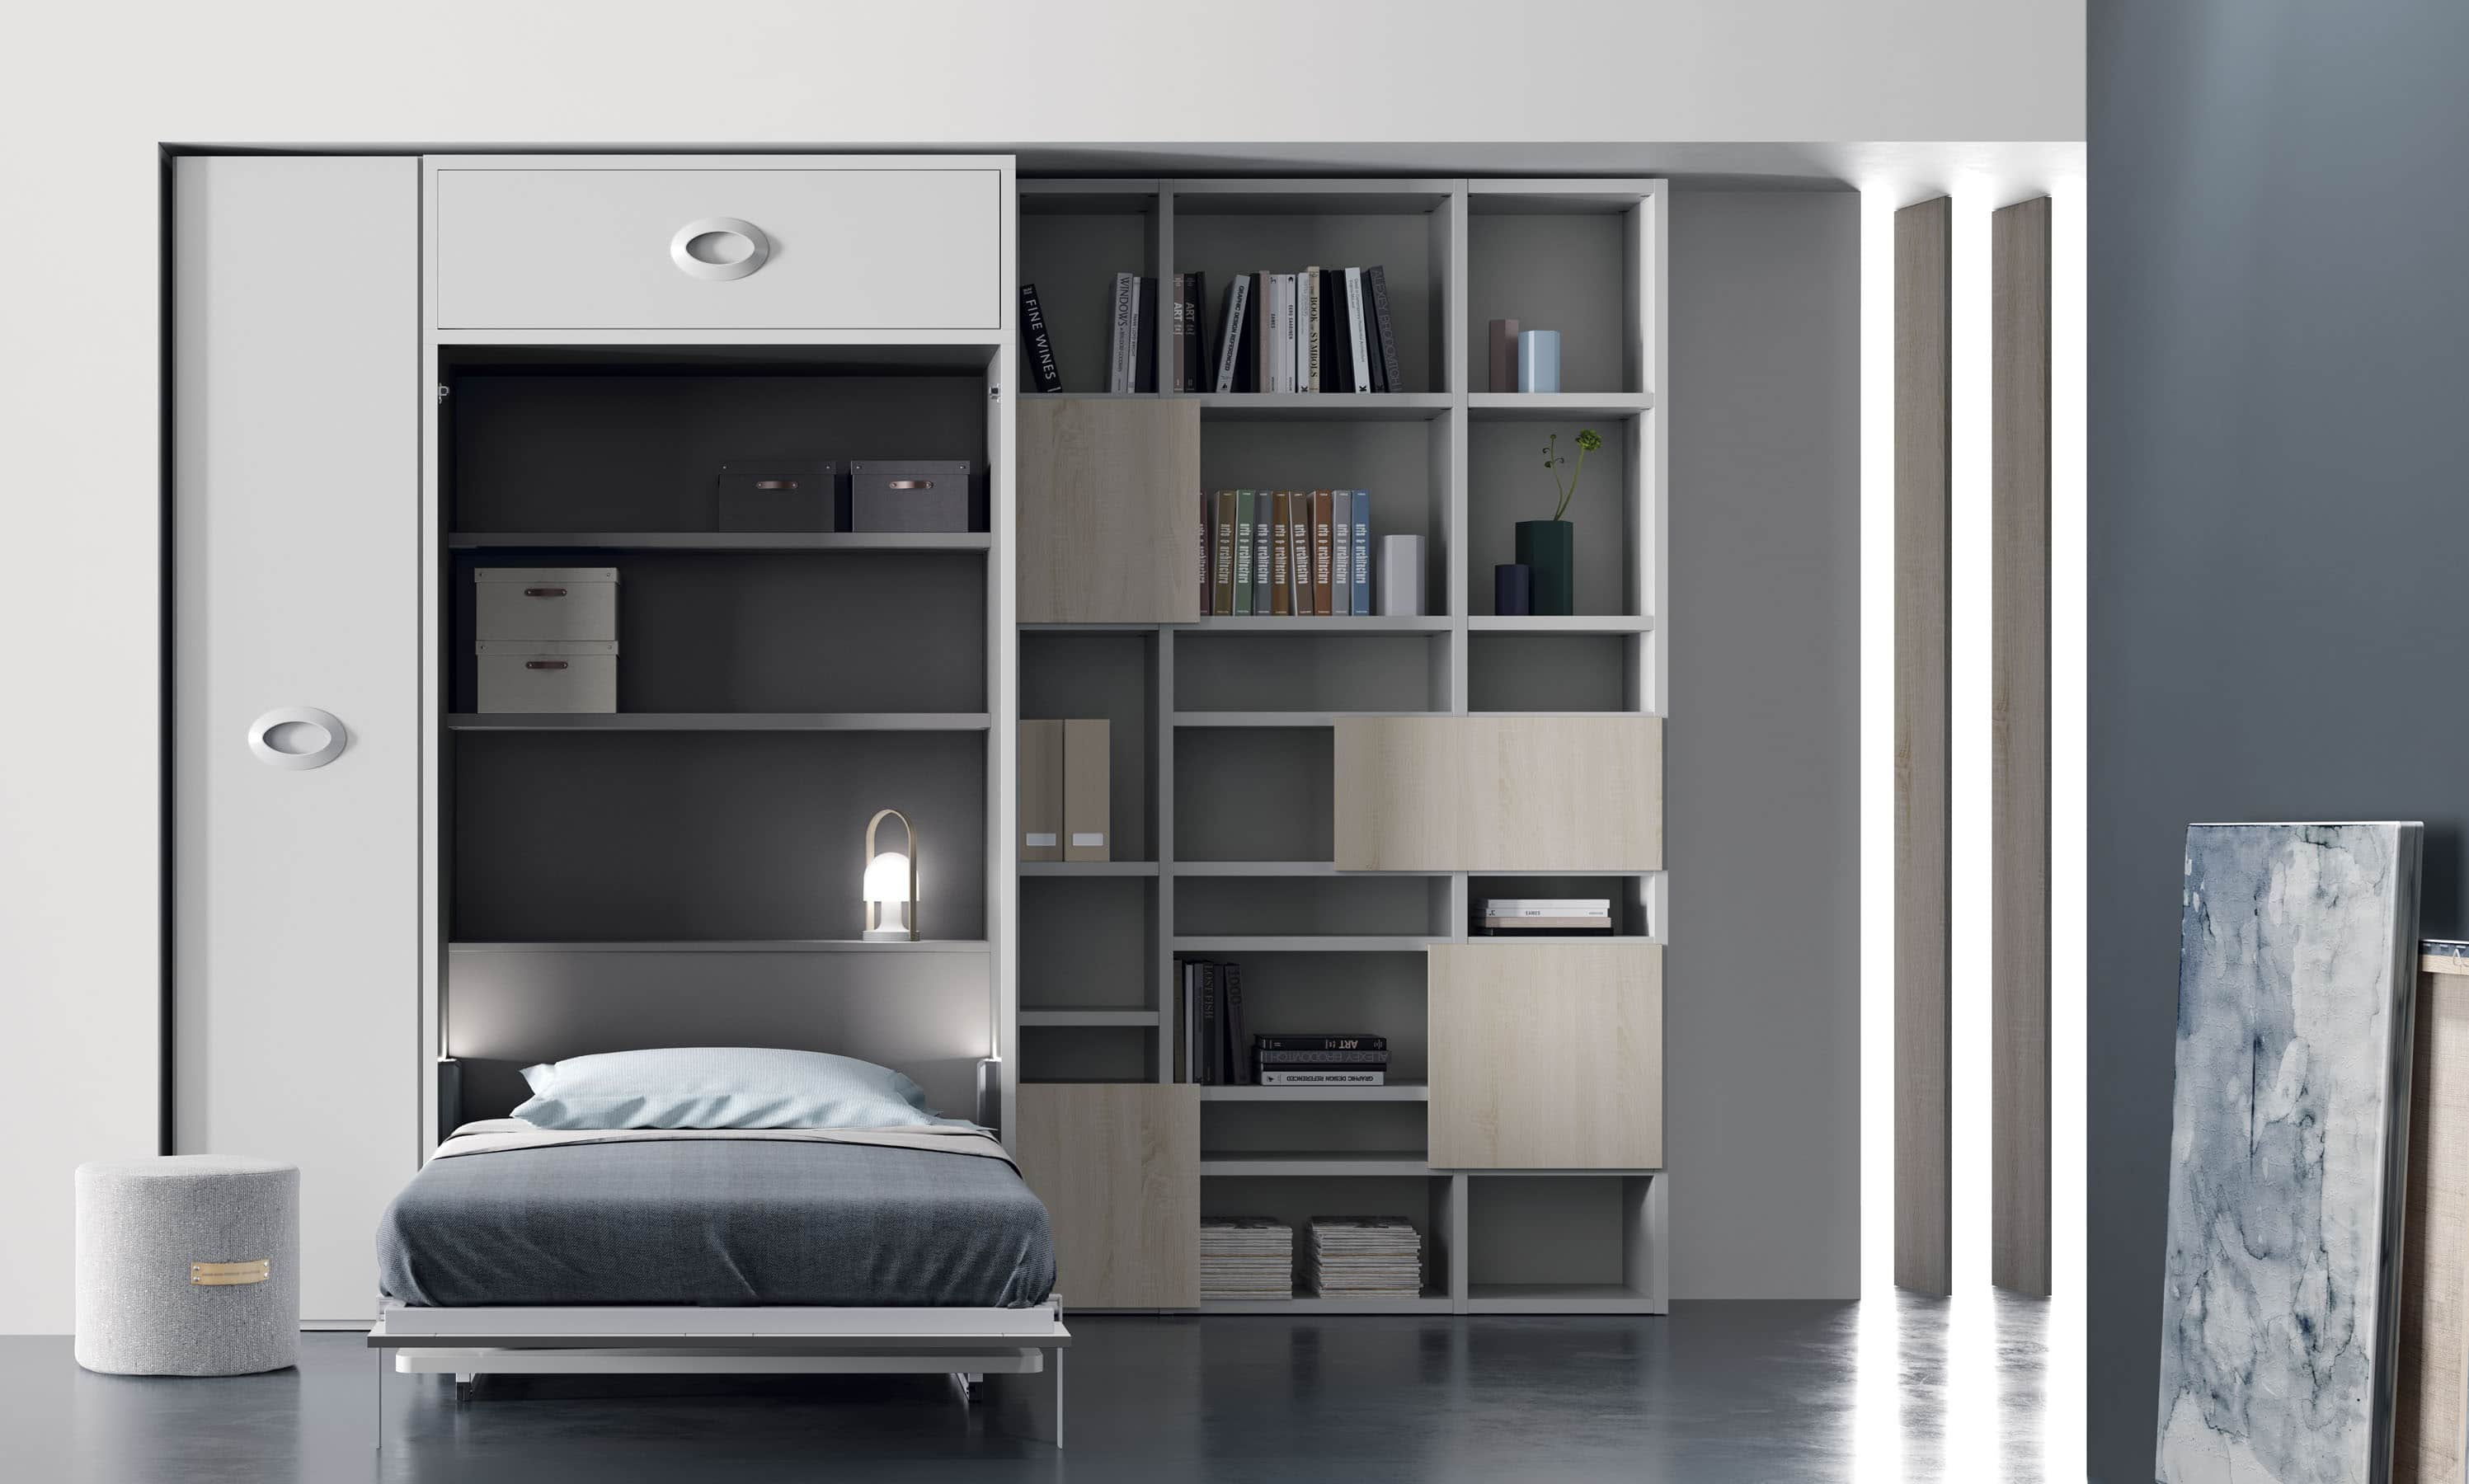 Cama abatible next 02 bautista muebles y decoraci n for Muebles bautista abadino